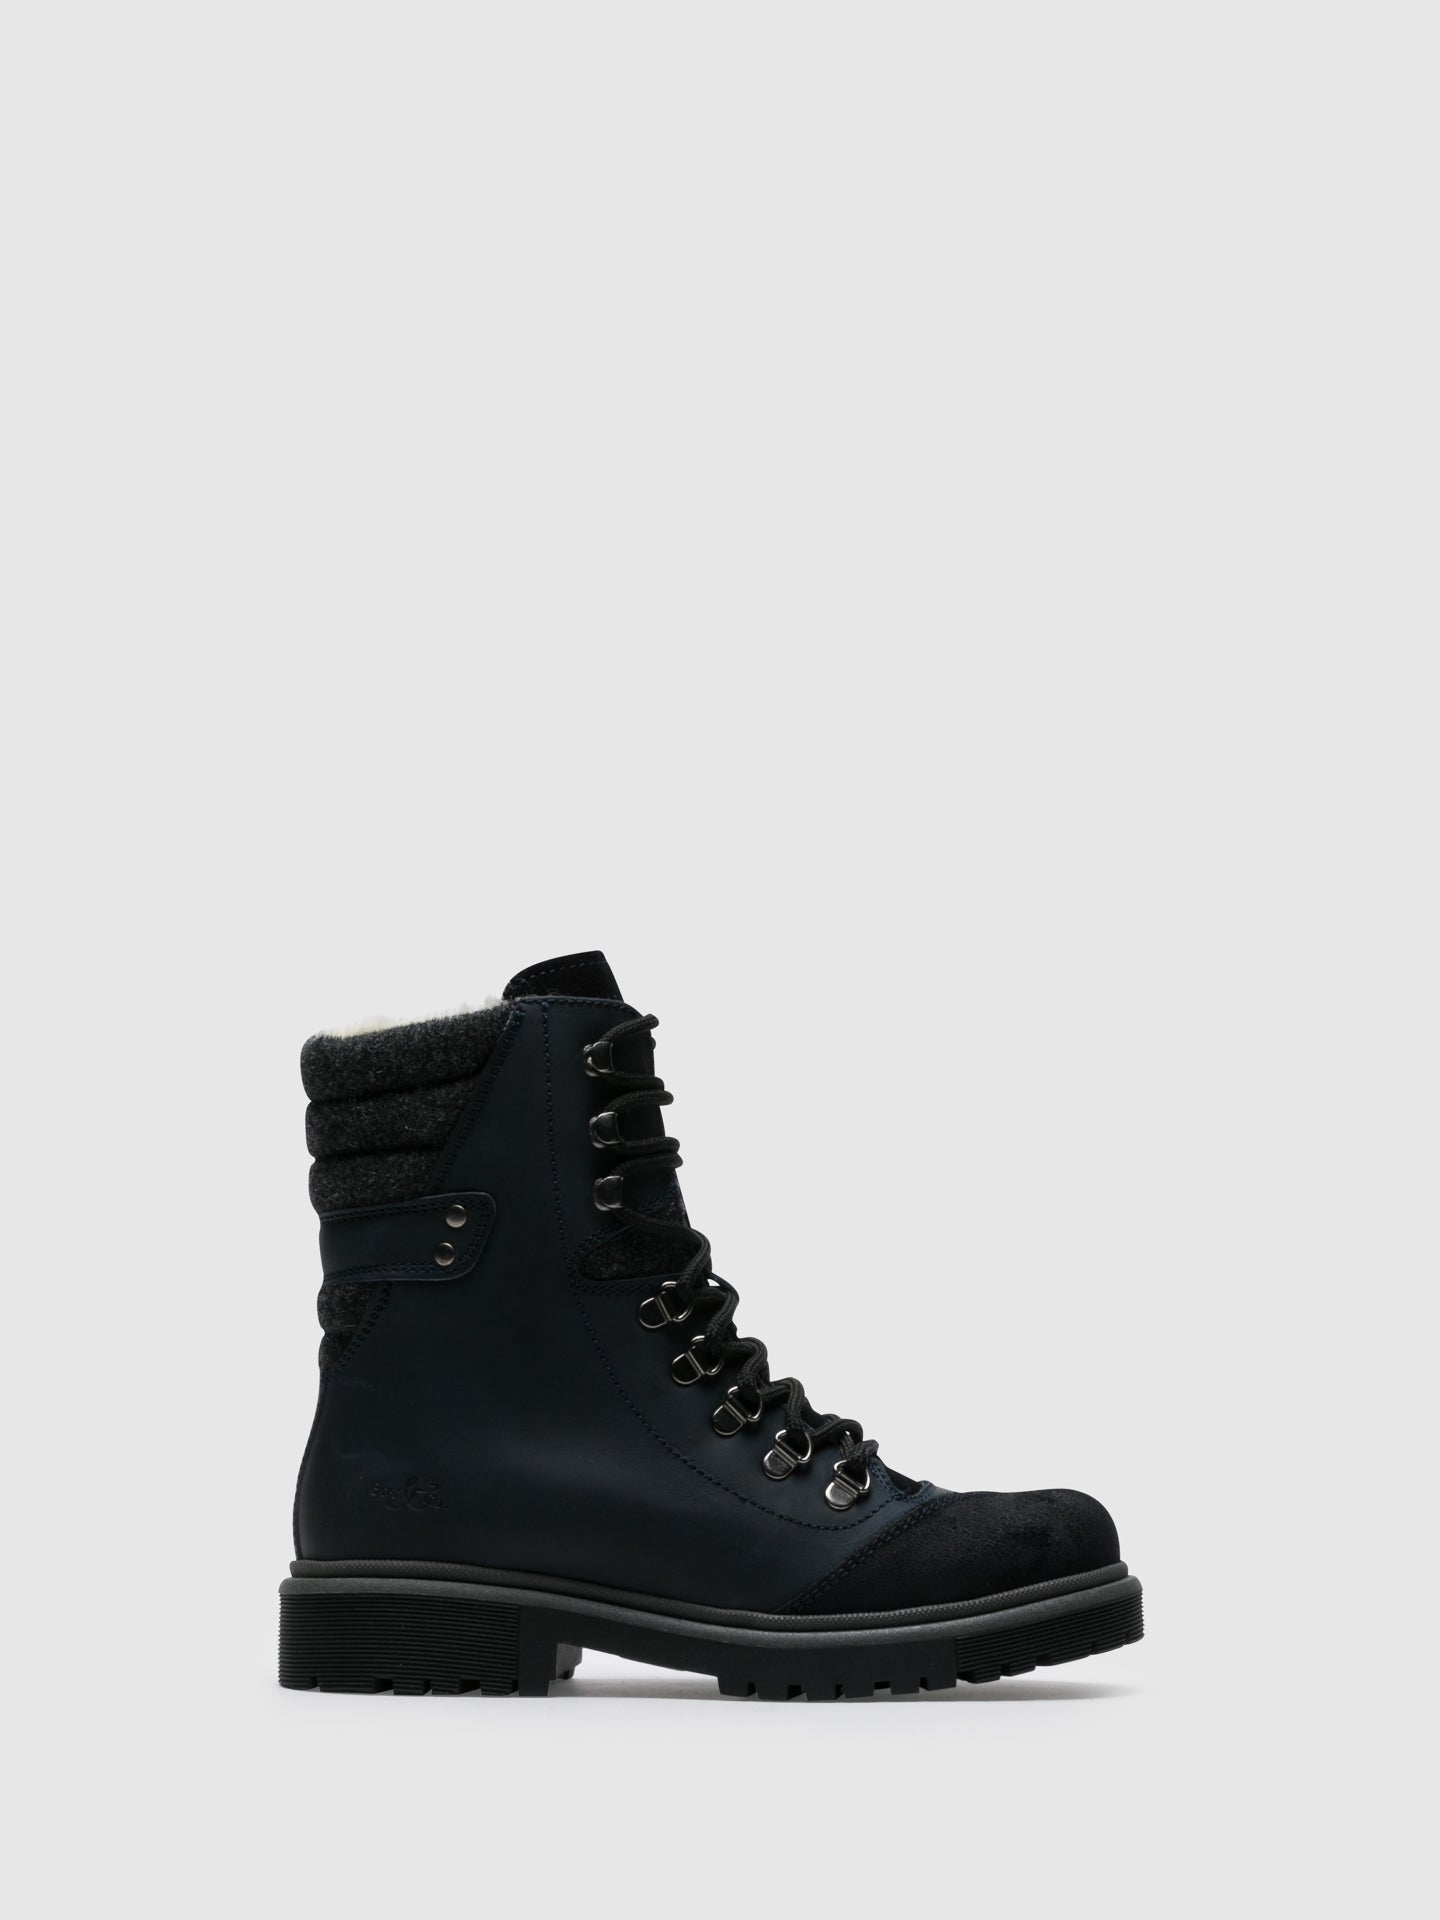 Bos&Co Blue Zip Up Boots